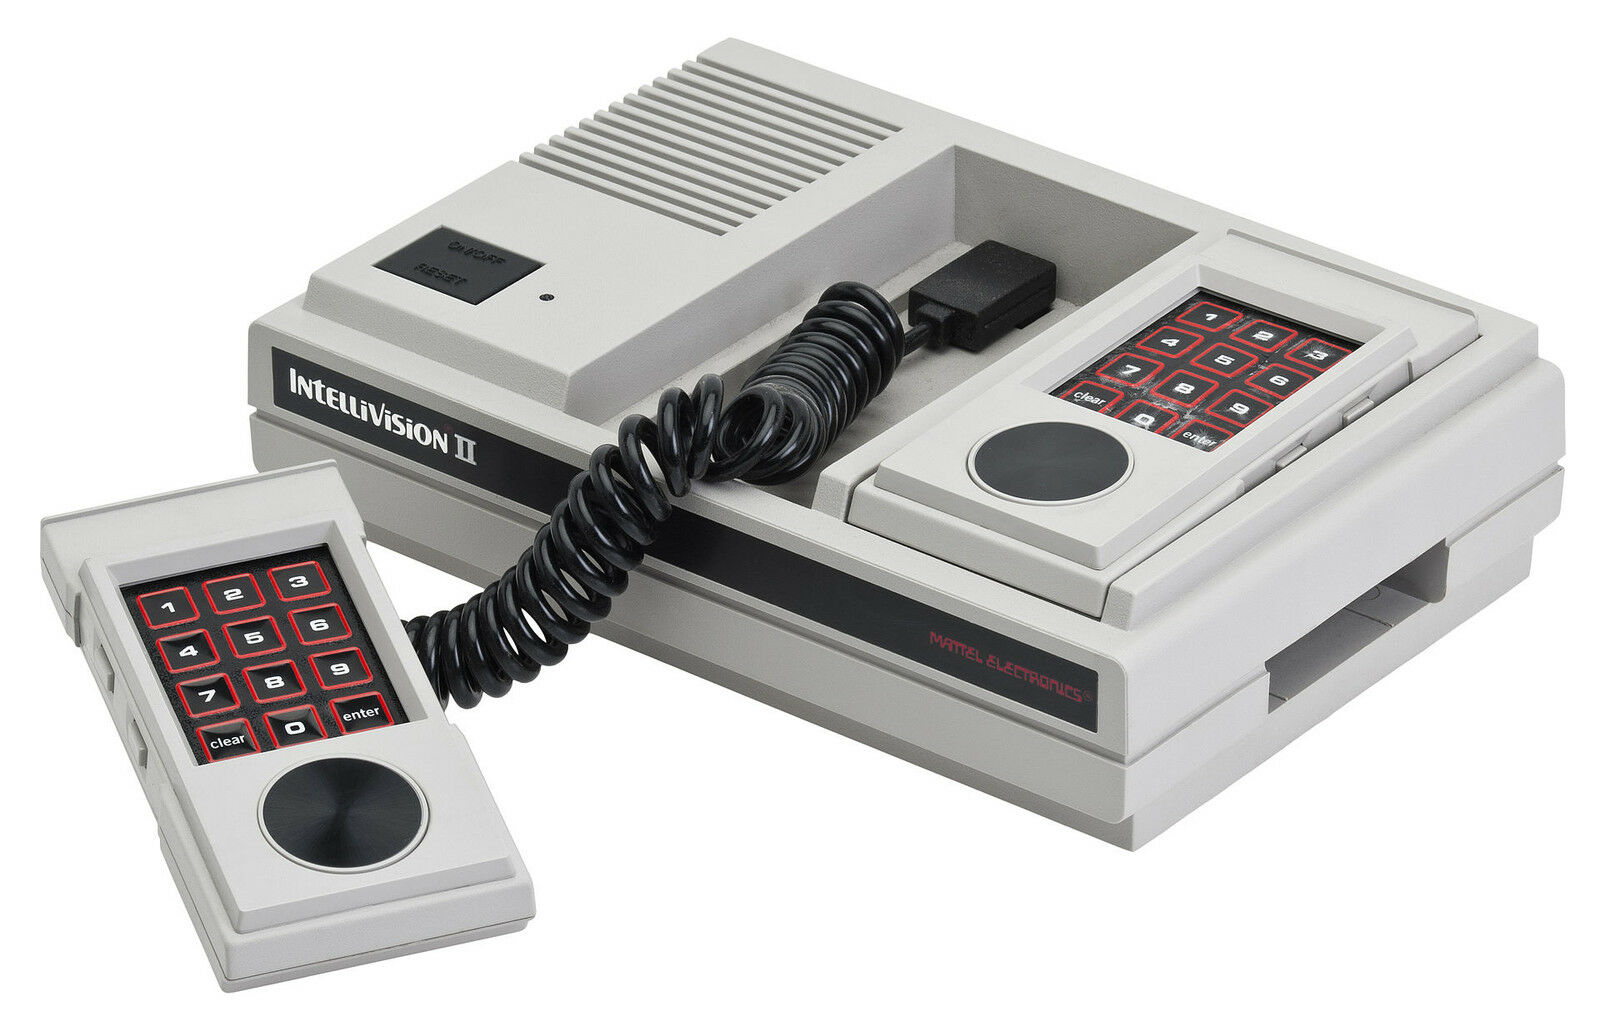 Everything that you need to know about the Intellivision 2 Game System